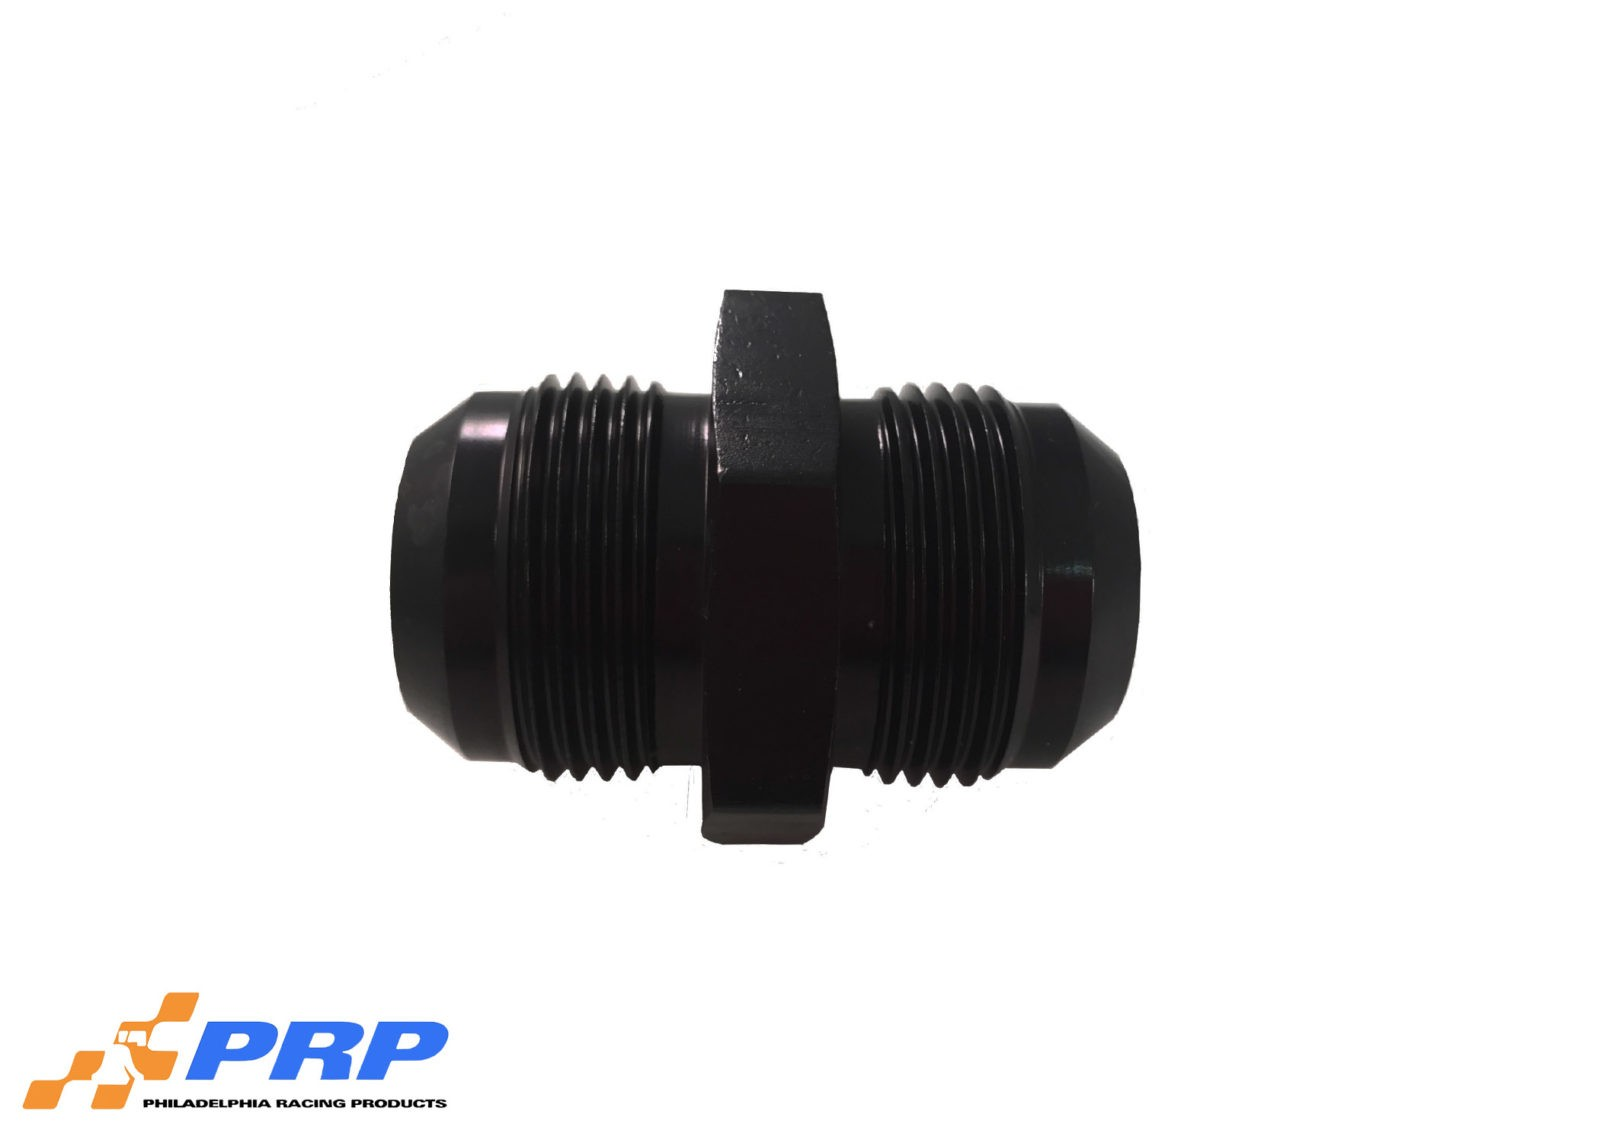 Black Flare Union 16-AN made by PRP Racing Products